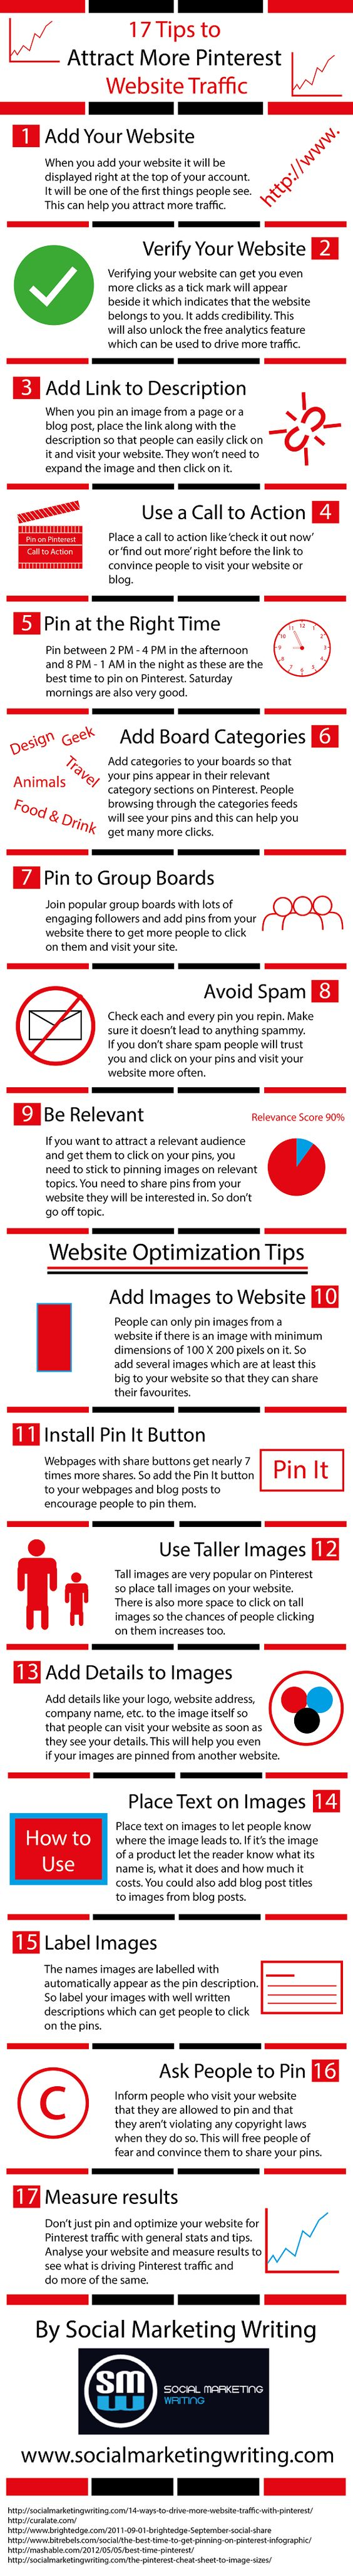 17 Tips to Attract More Pinterest Website Traffic [Infographic]